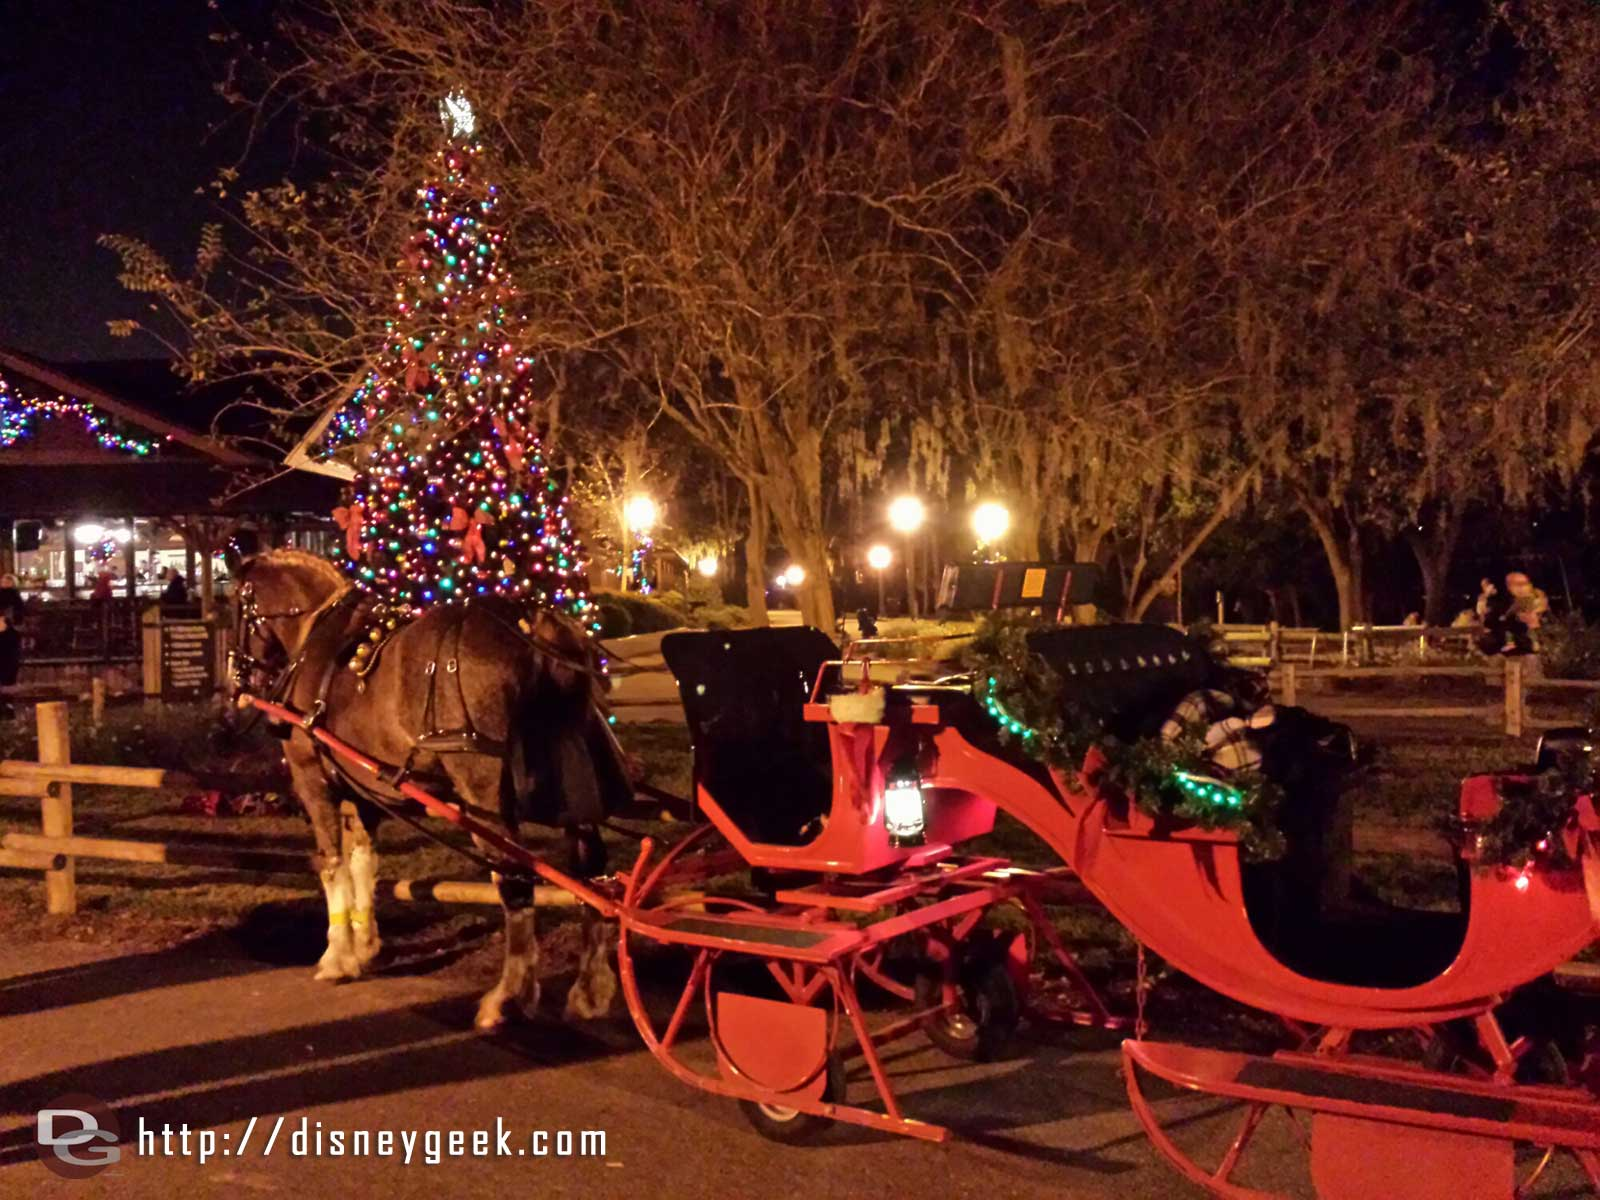 Holiday Sleigh rides at Fort Wilderness $70 for 25 min ride